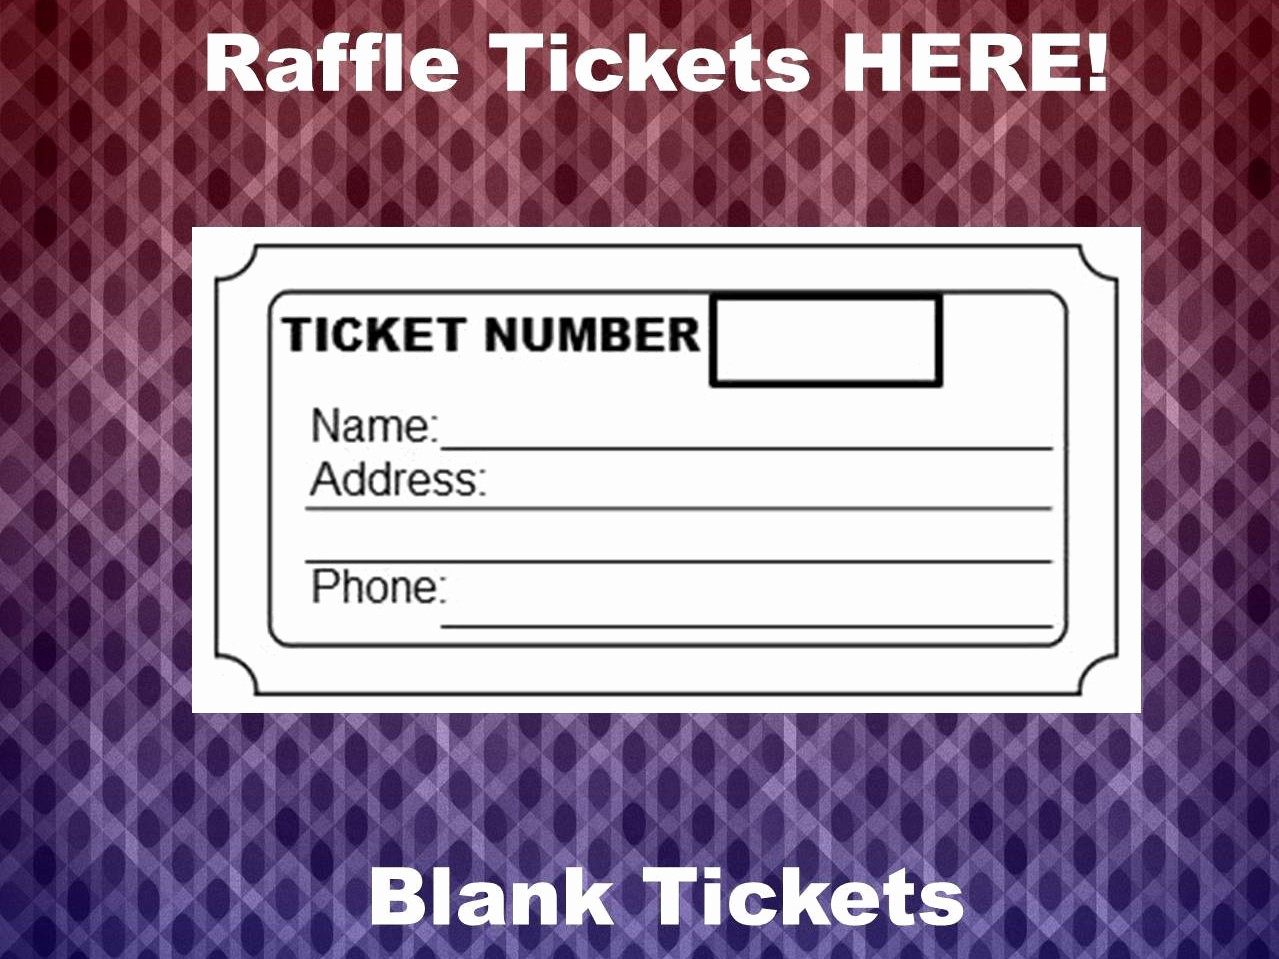 Free Printable Tickets with Numbers New Raffle Ticket Template 8 Blank Raffle Tickets Per Page Party